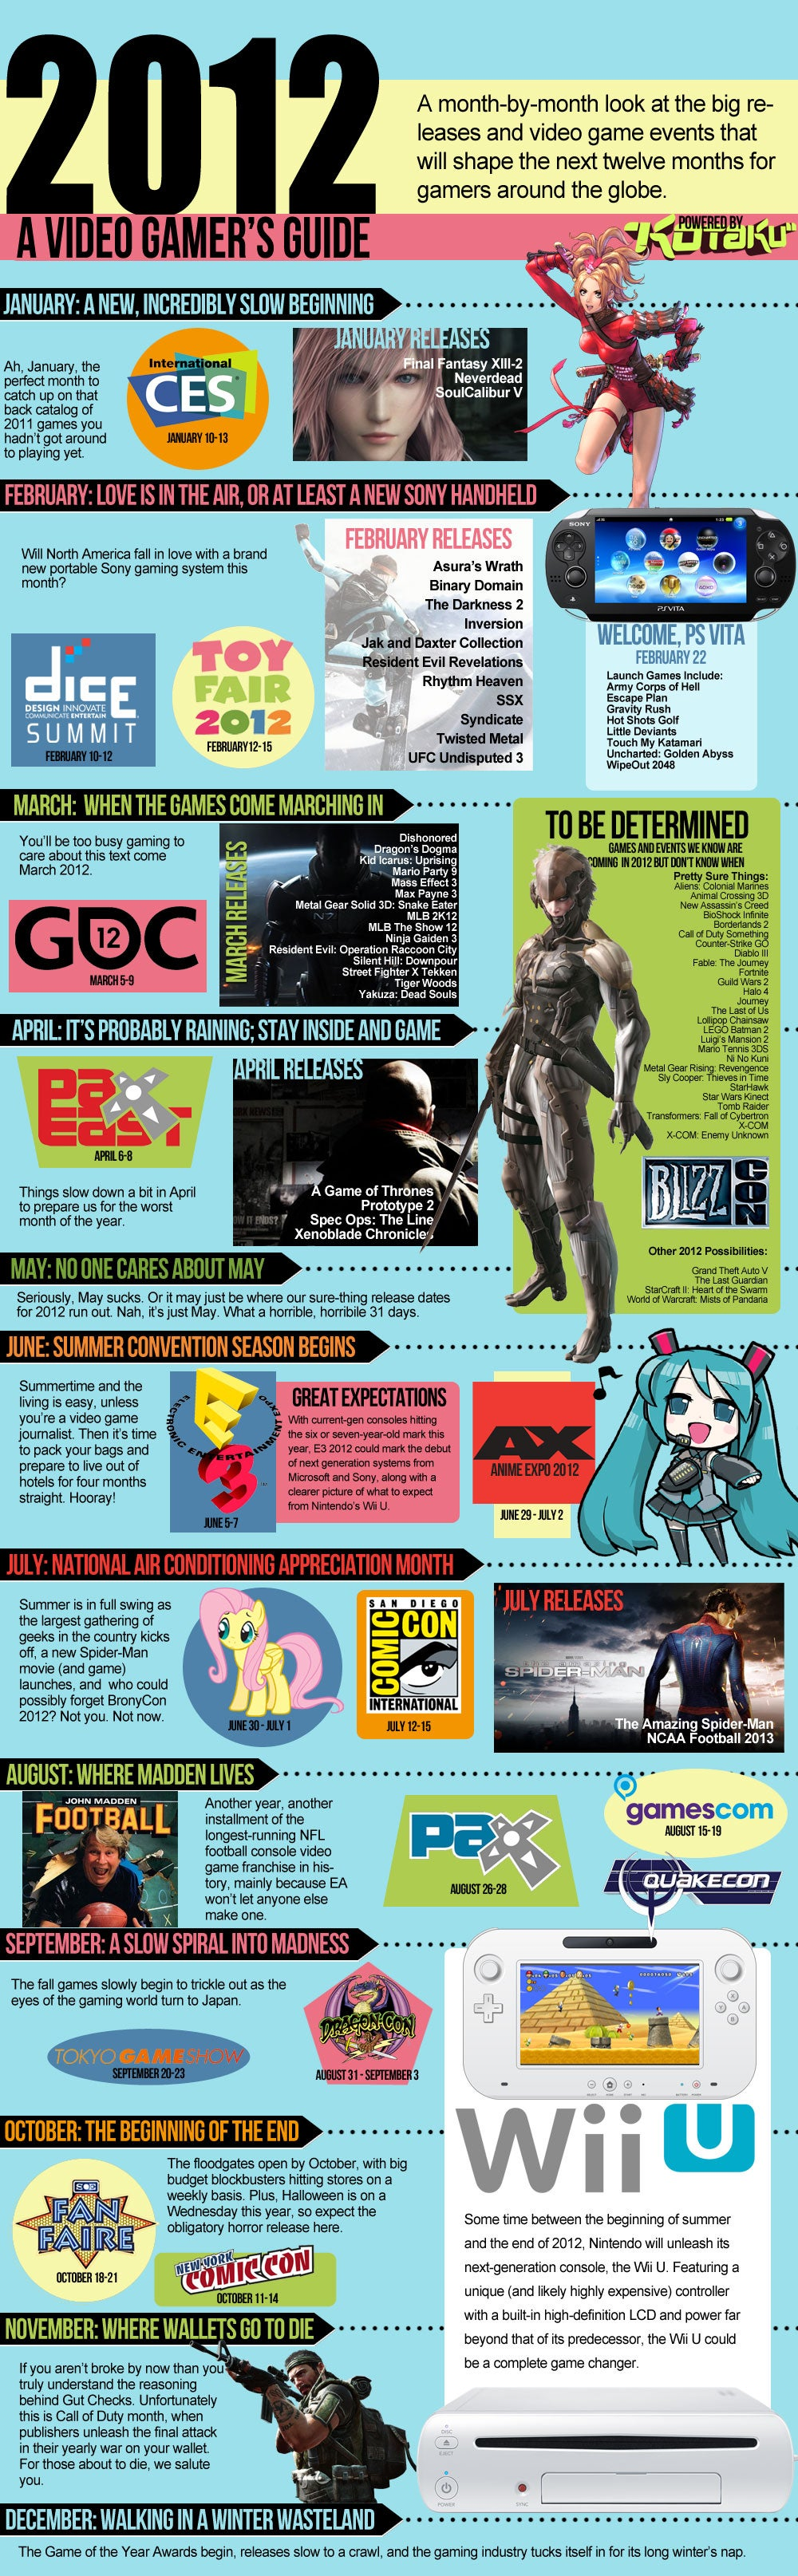 Kotaku's Guide to Gaming in the Year 2012